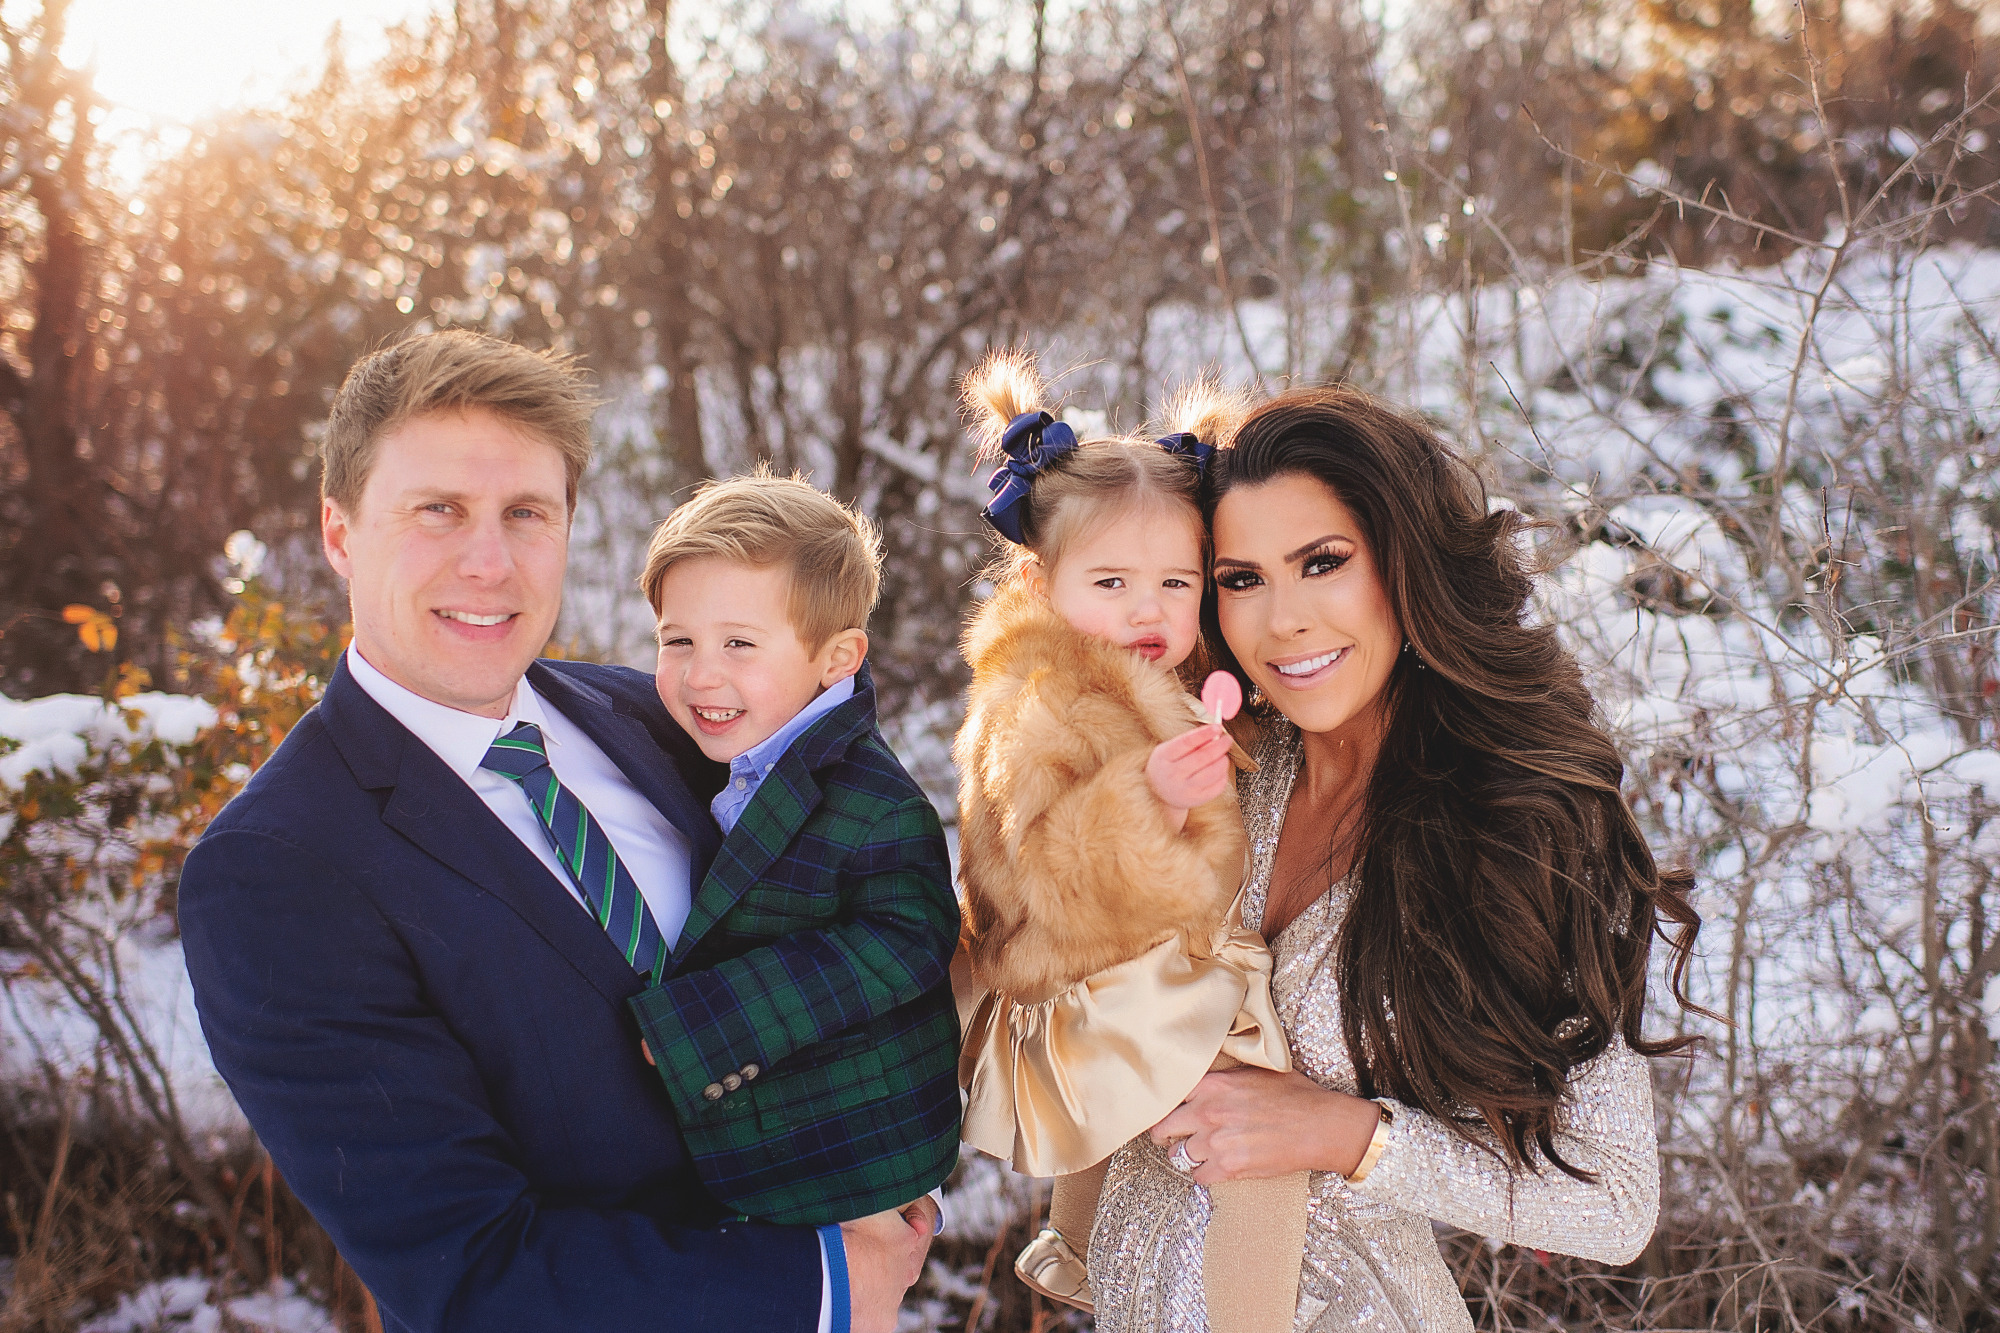 Family Christmas Card by popular US lifestyle blog, The Sweetest Thing: image of a family standing together in the snow with their dog and wearing a Eliza J sequin dress, blue suit, blue and green plaid blazer and tan pants, and a faux fur coat and gold dress.